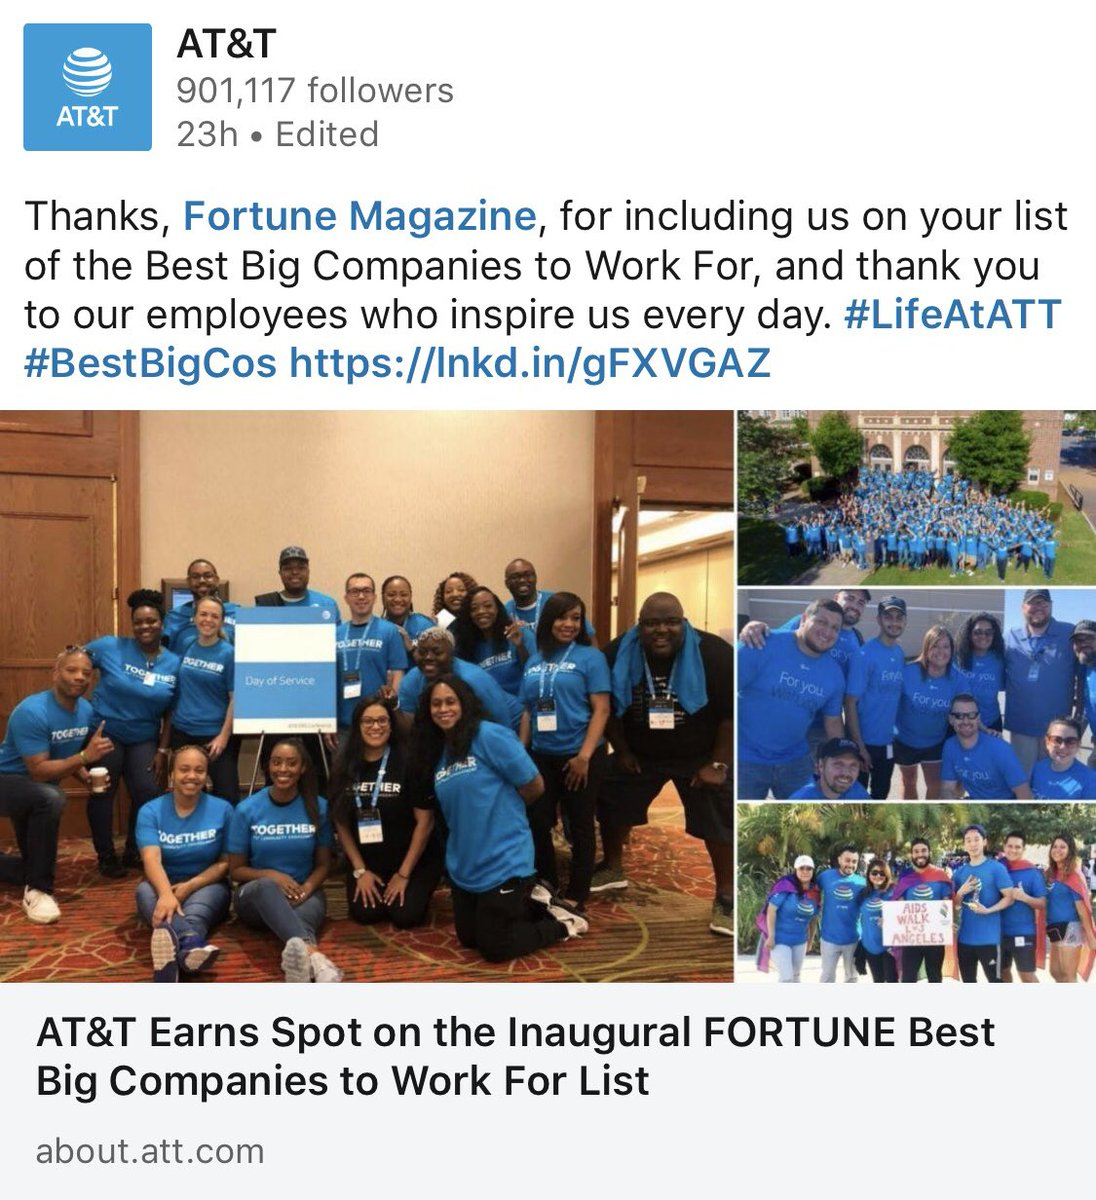 "1. Congrats @att for well-earned spot on @FortuneMagazine ""Best Big Companies to Work For"" list! 2. I couldn't be prouder to be in one of the pics, because I was with the AMAZING Florida team during our time helping the Panama City area after Hurricane Michael! #lifeatatt #OneFLA<br>http://pic.twitter.com/tu41GPjWjg"